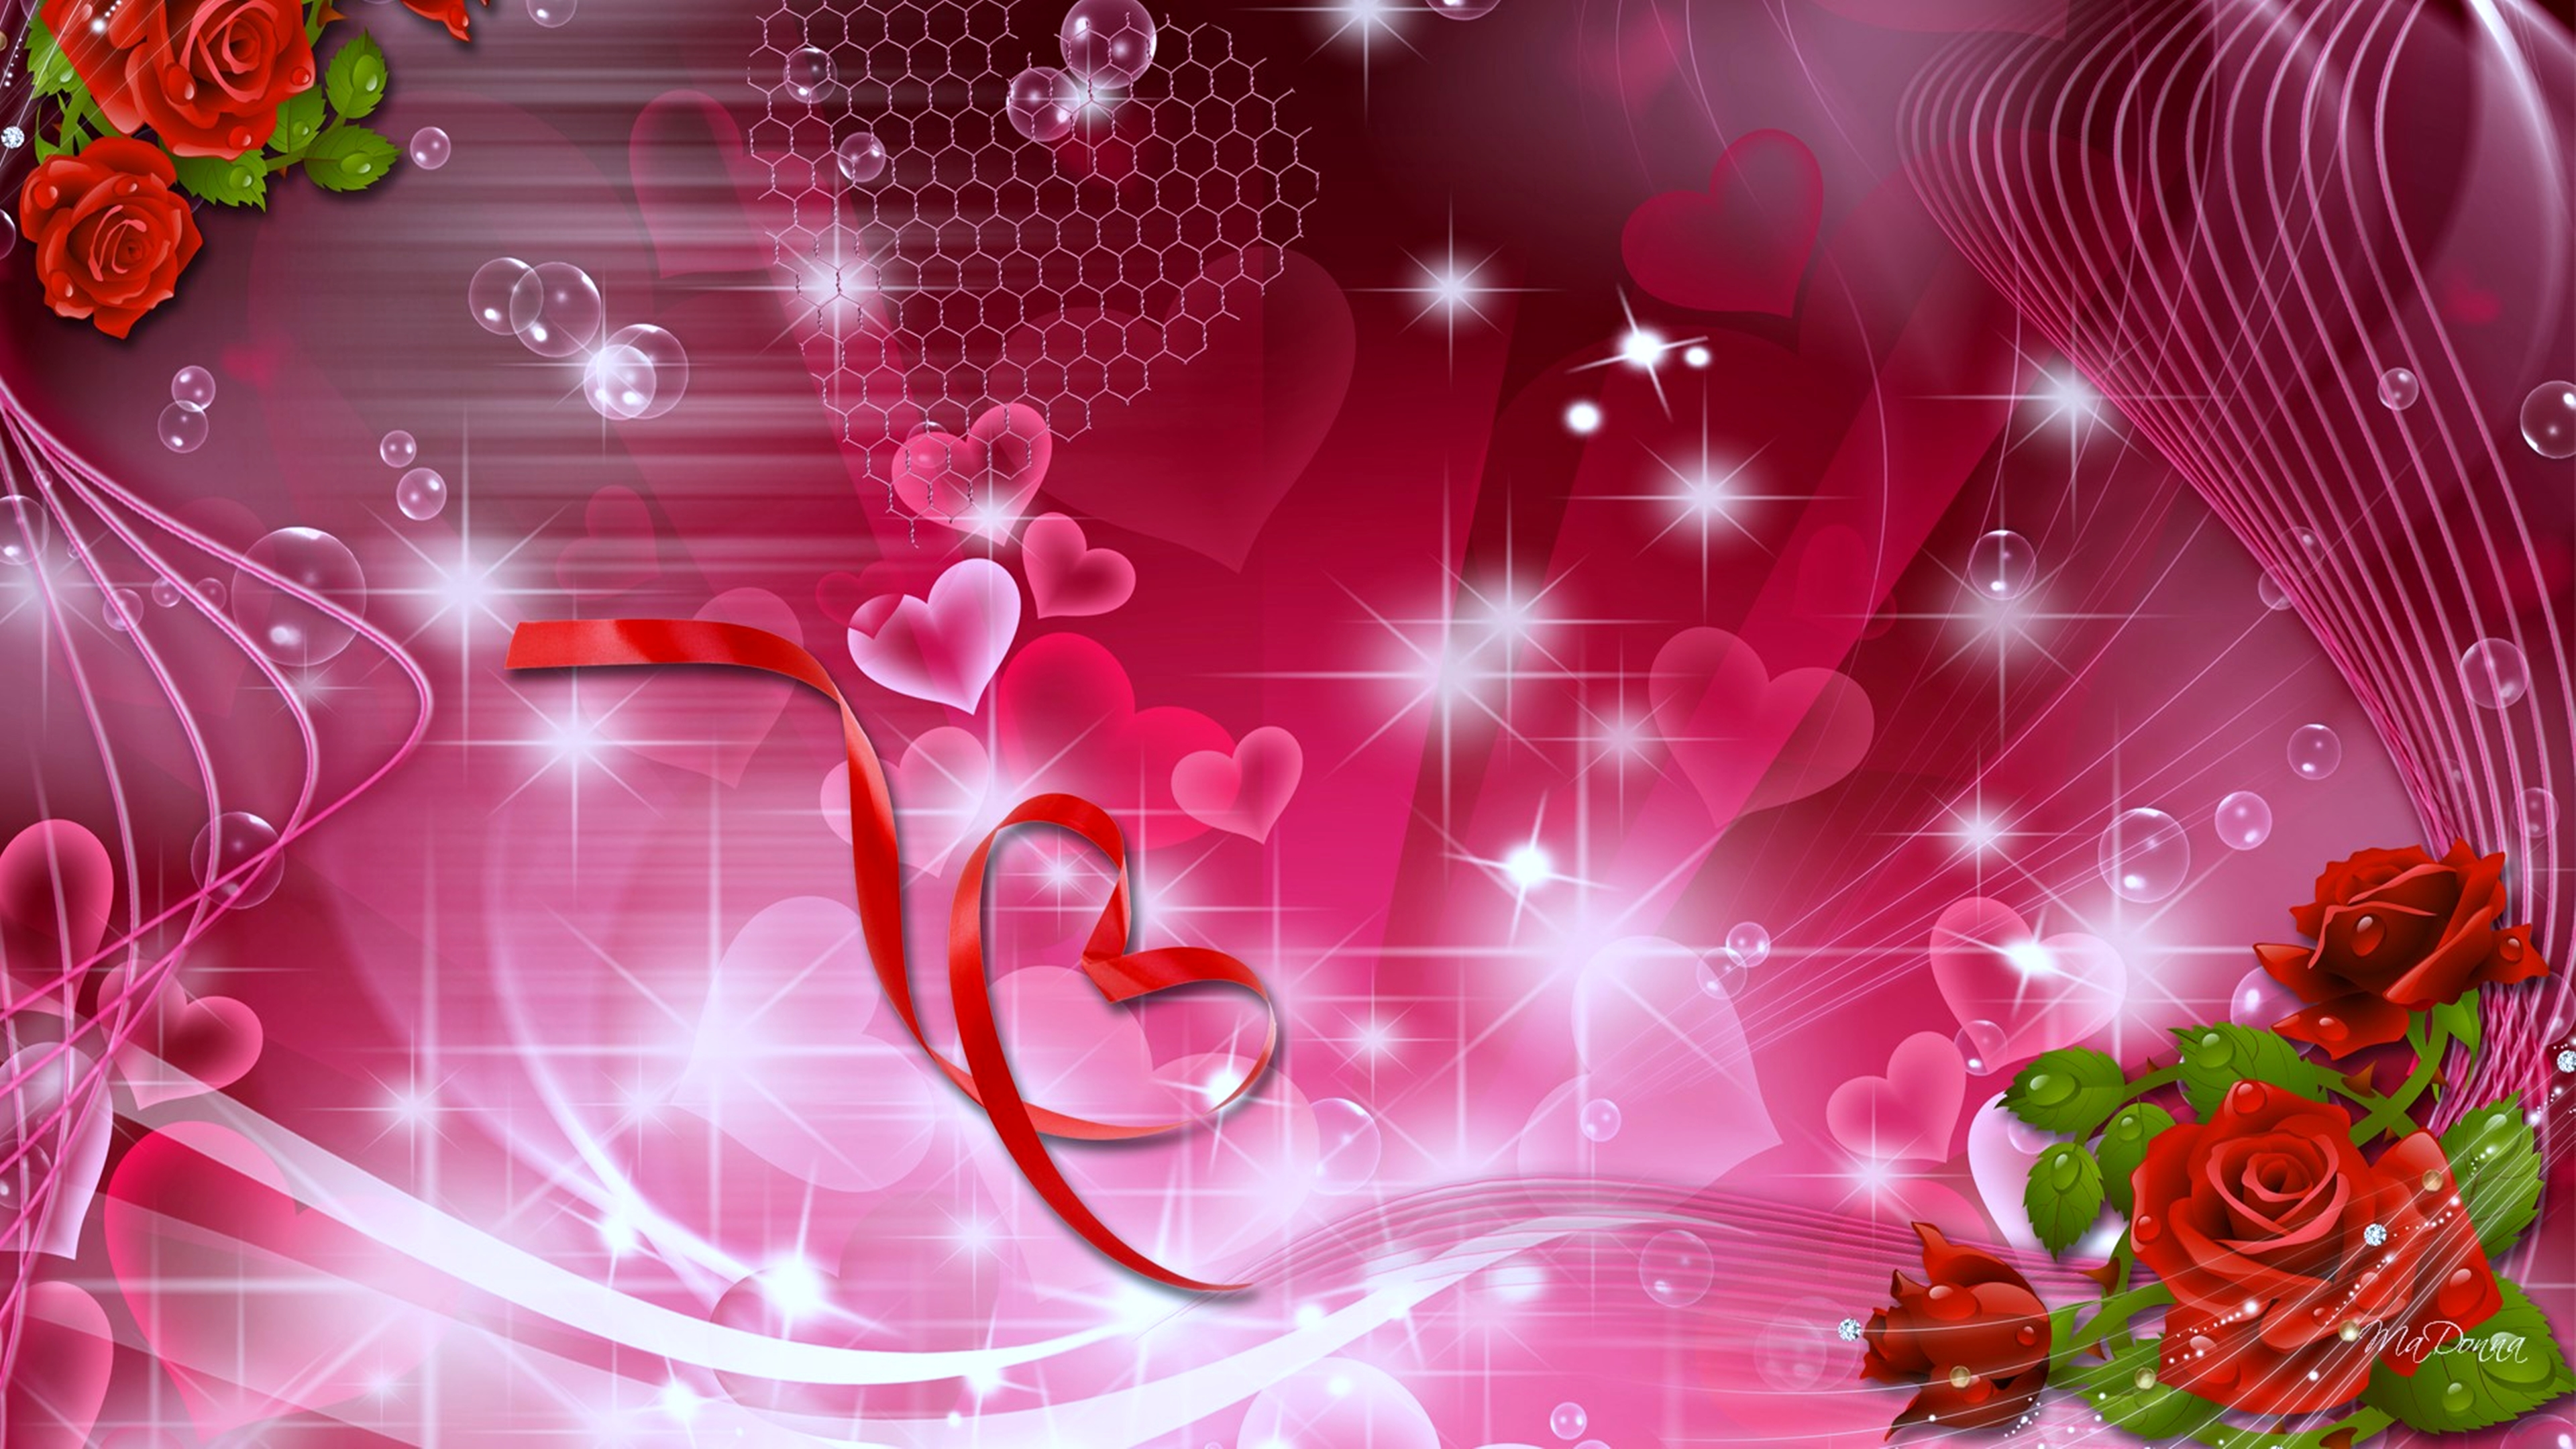 Full Hd Love Wallpapers Free Download Desktop Background: Love Backgrounds, Pictures, Images